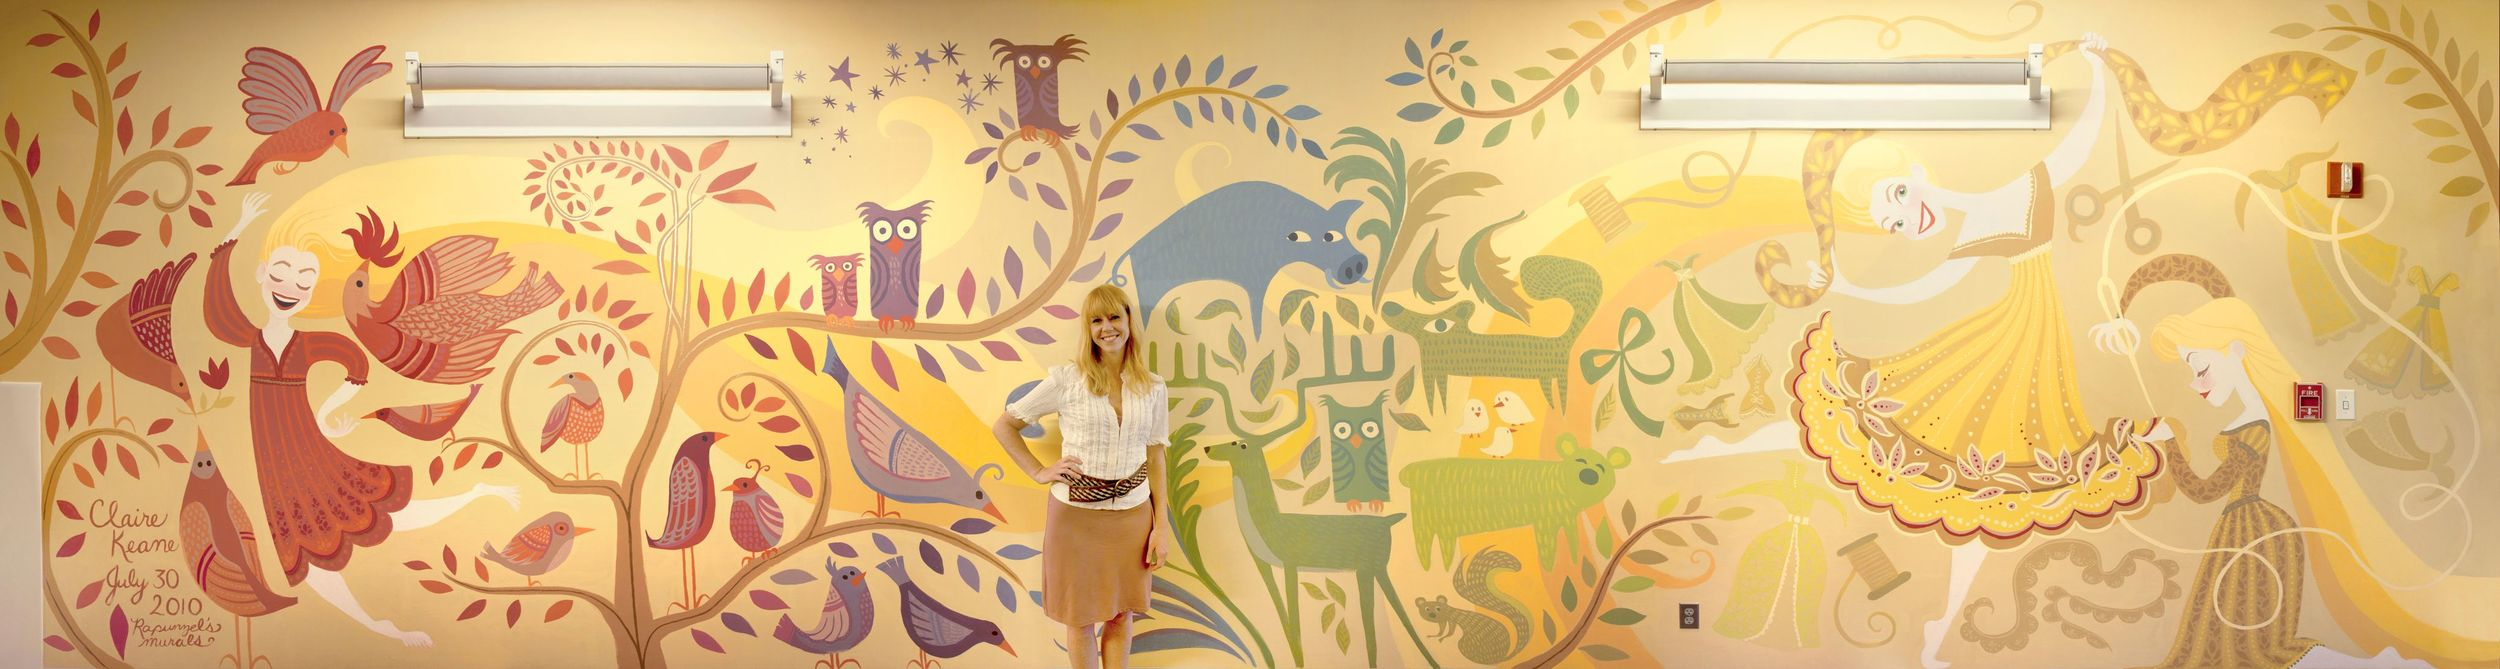 HAND PAINTED RAPUNZEL MURAL AT WALT DISNEY FEATURE ANIMATION STUDIO